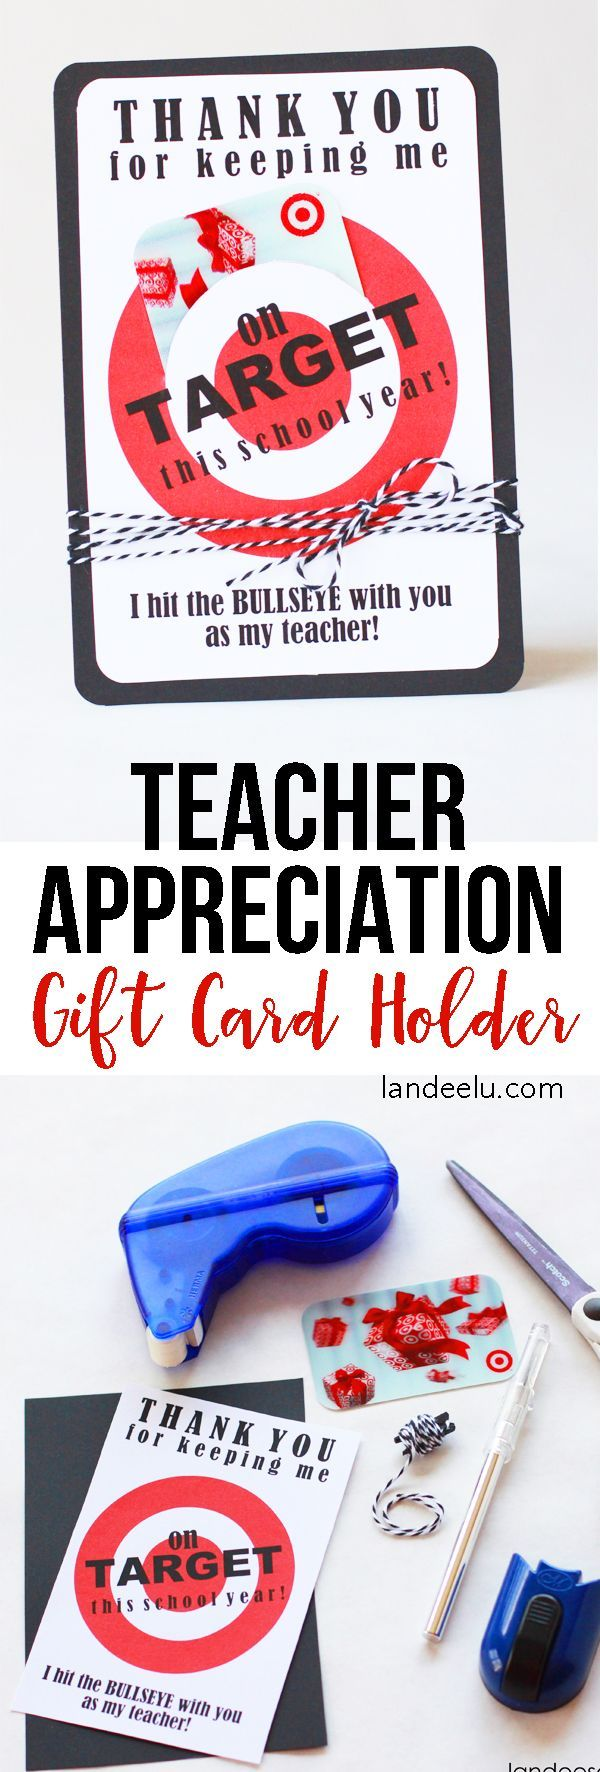 Best 300 teacher appreciationsmall gift ideas images on pinterest teacher appreciation gift idea every teacher loves target cute way to give negle Images